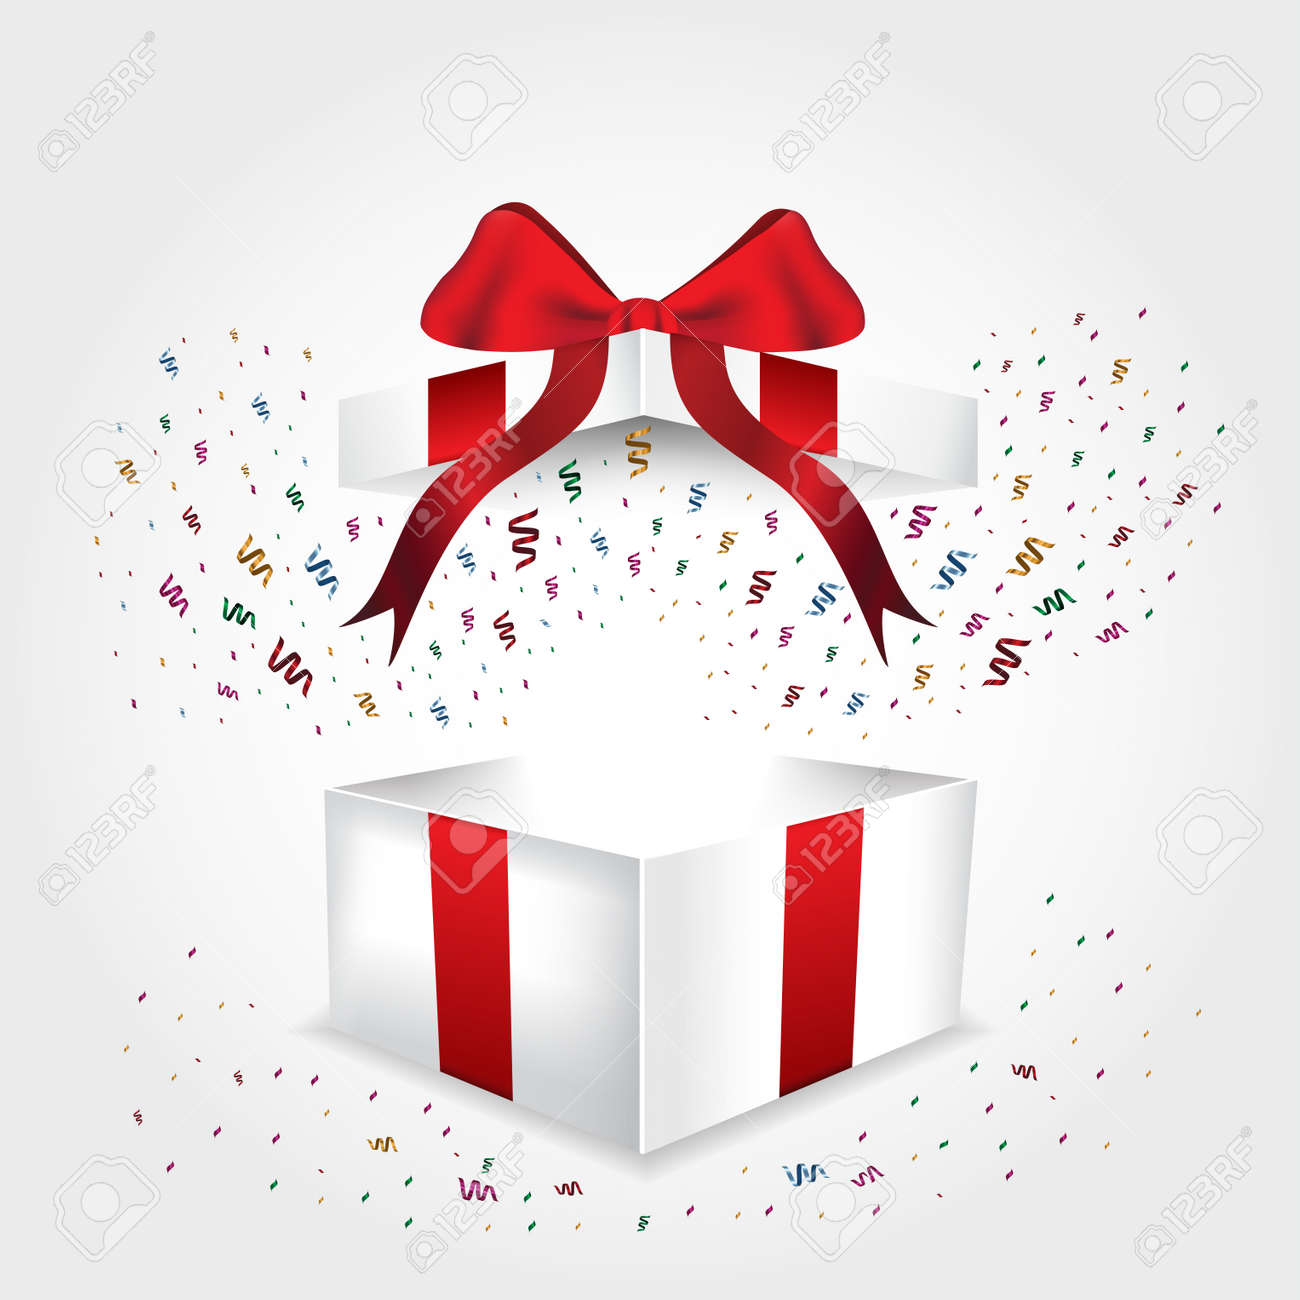 Open Gift Box With Red Ribbon Royalty Free Cliparts Vectors And Stock Illustration Image 49241859